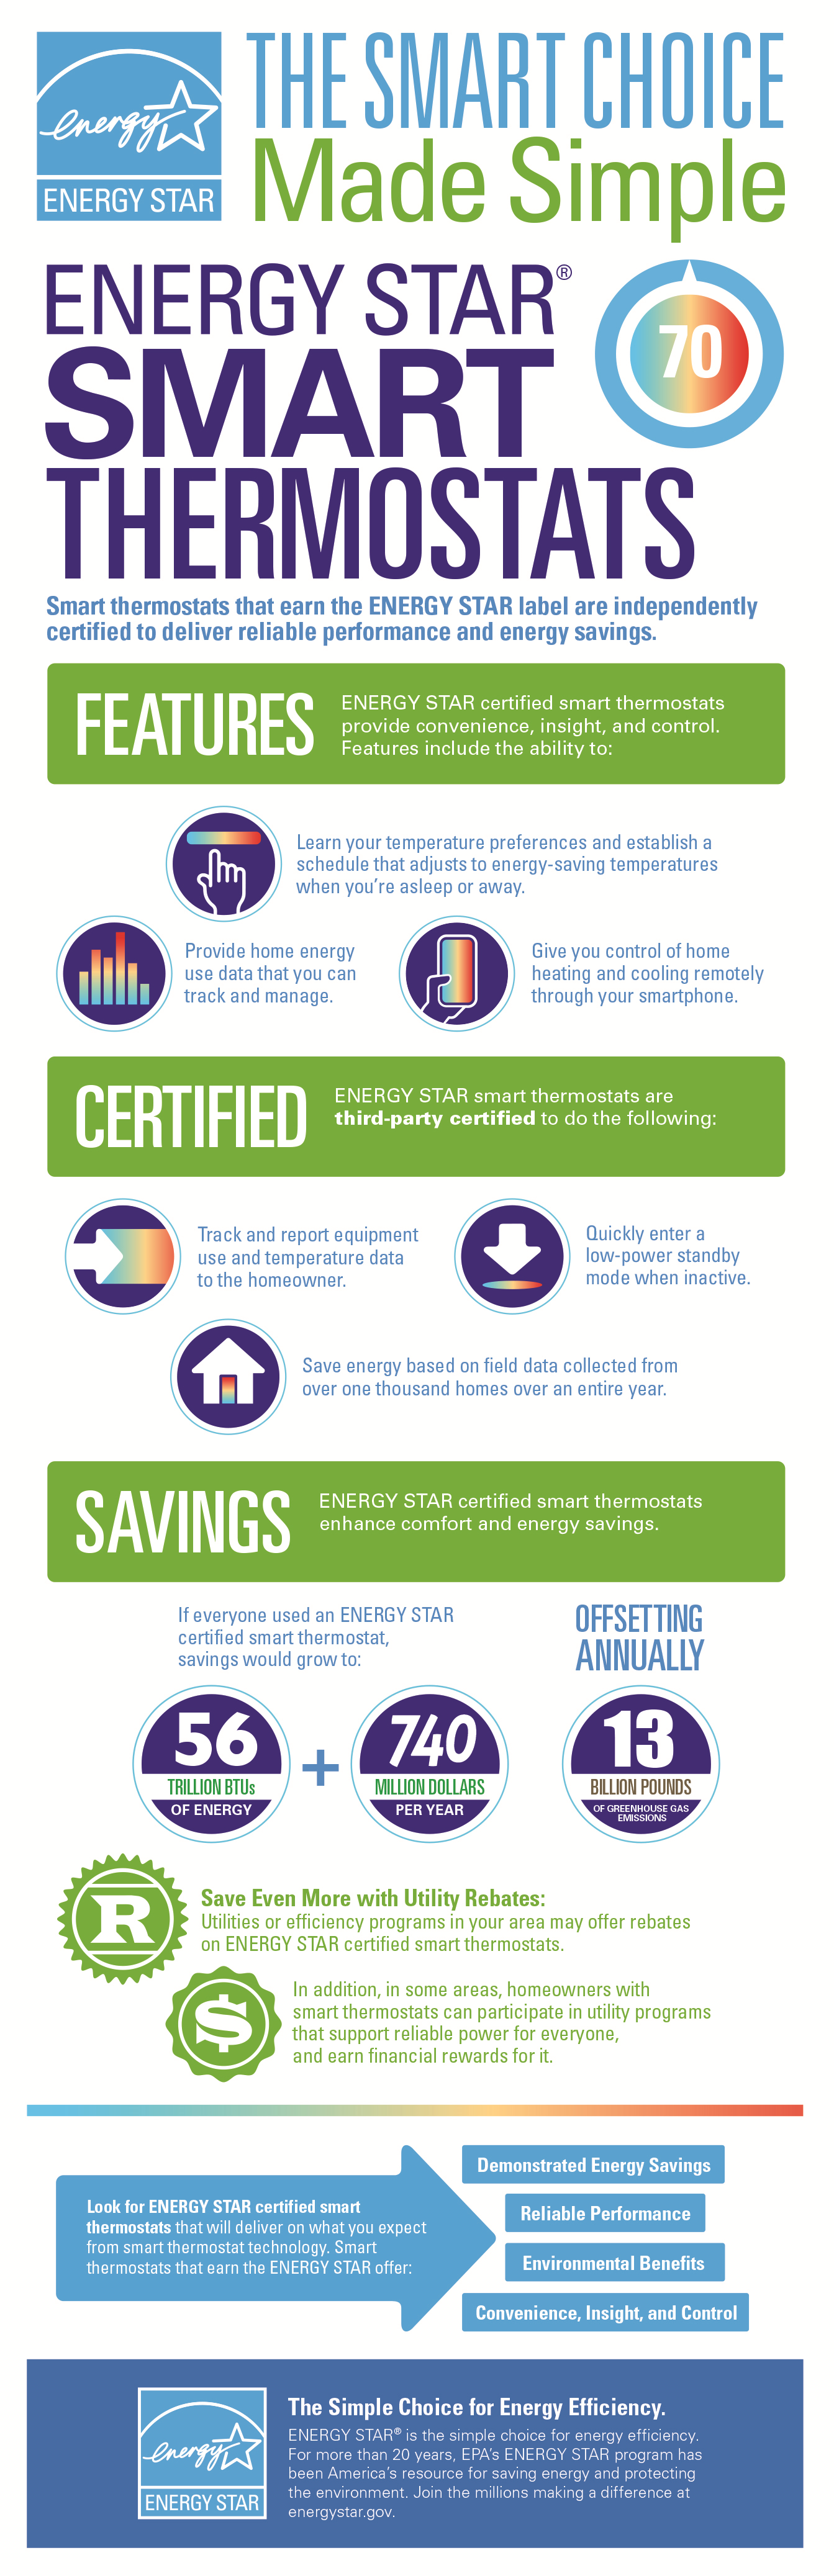 The Smart Choice Made Simple: ENERGY STAR Smart Thermostats Infographic